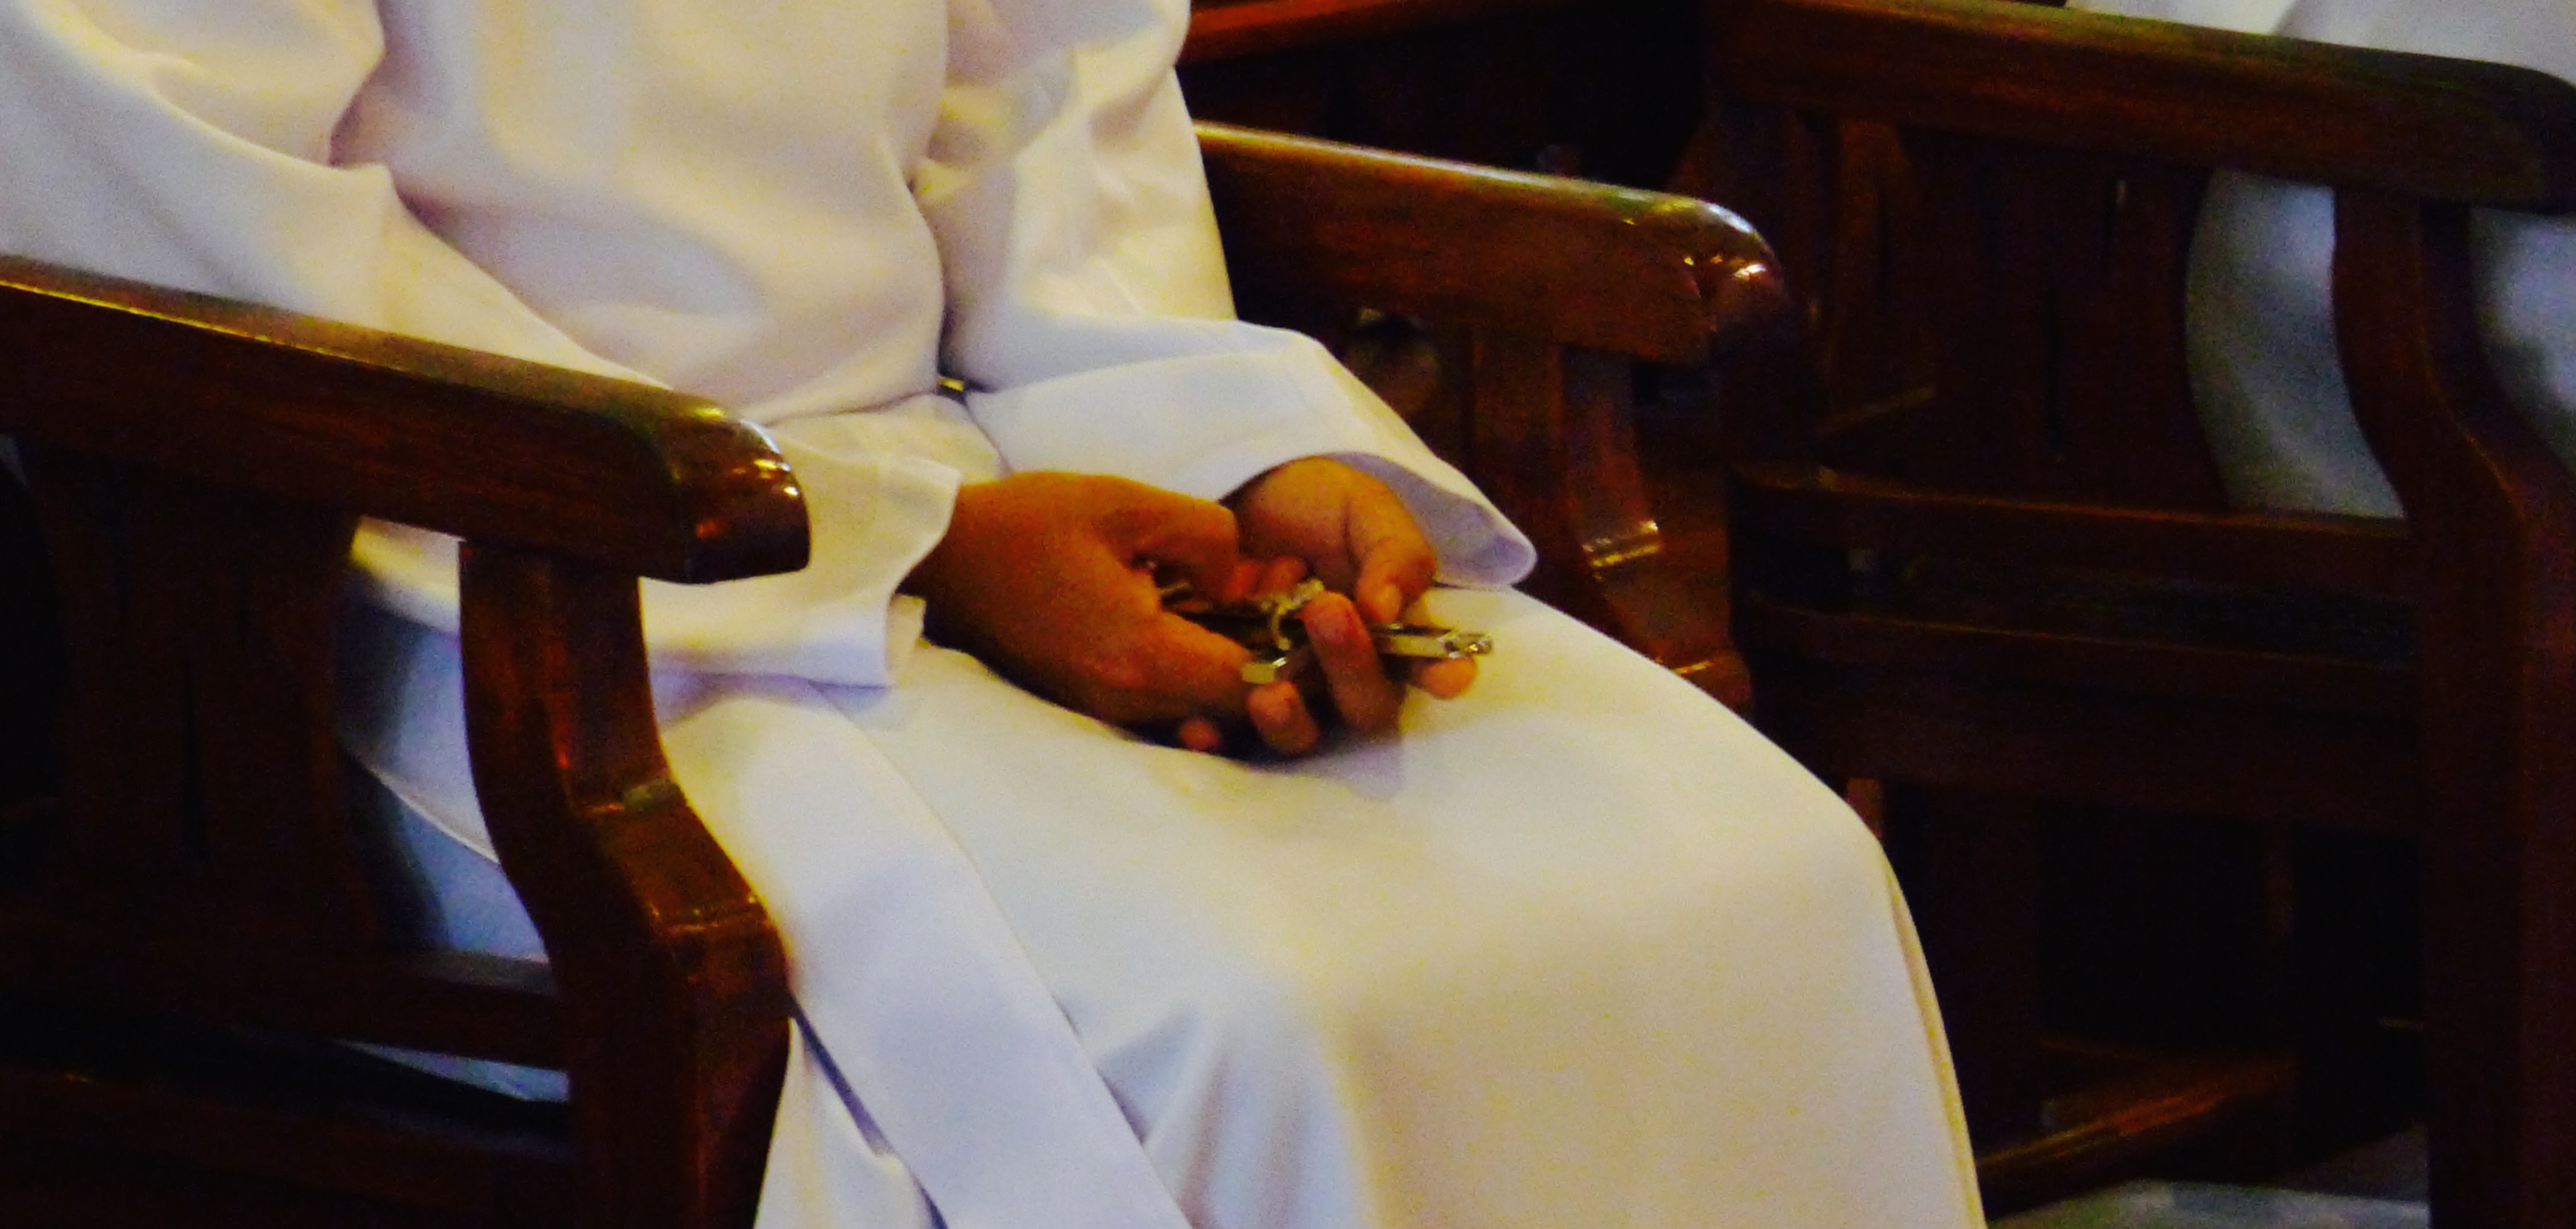 A Jesuit scholastic holds the cross after his first and perpetual vows in the Society of Jesus. Photo: Fr. Jboy Gonzales SJ